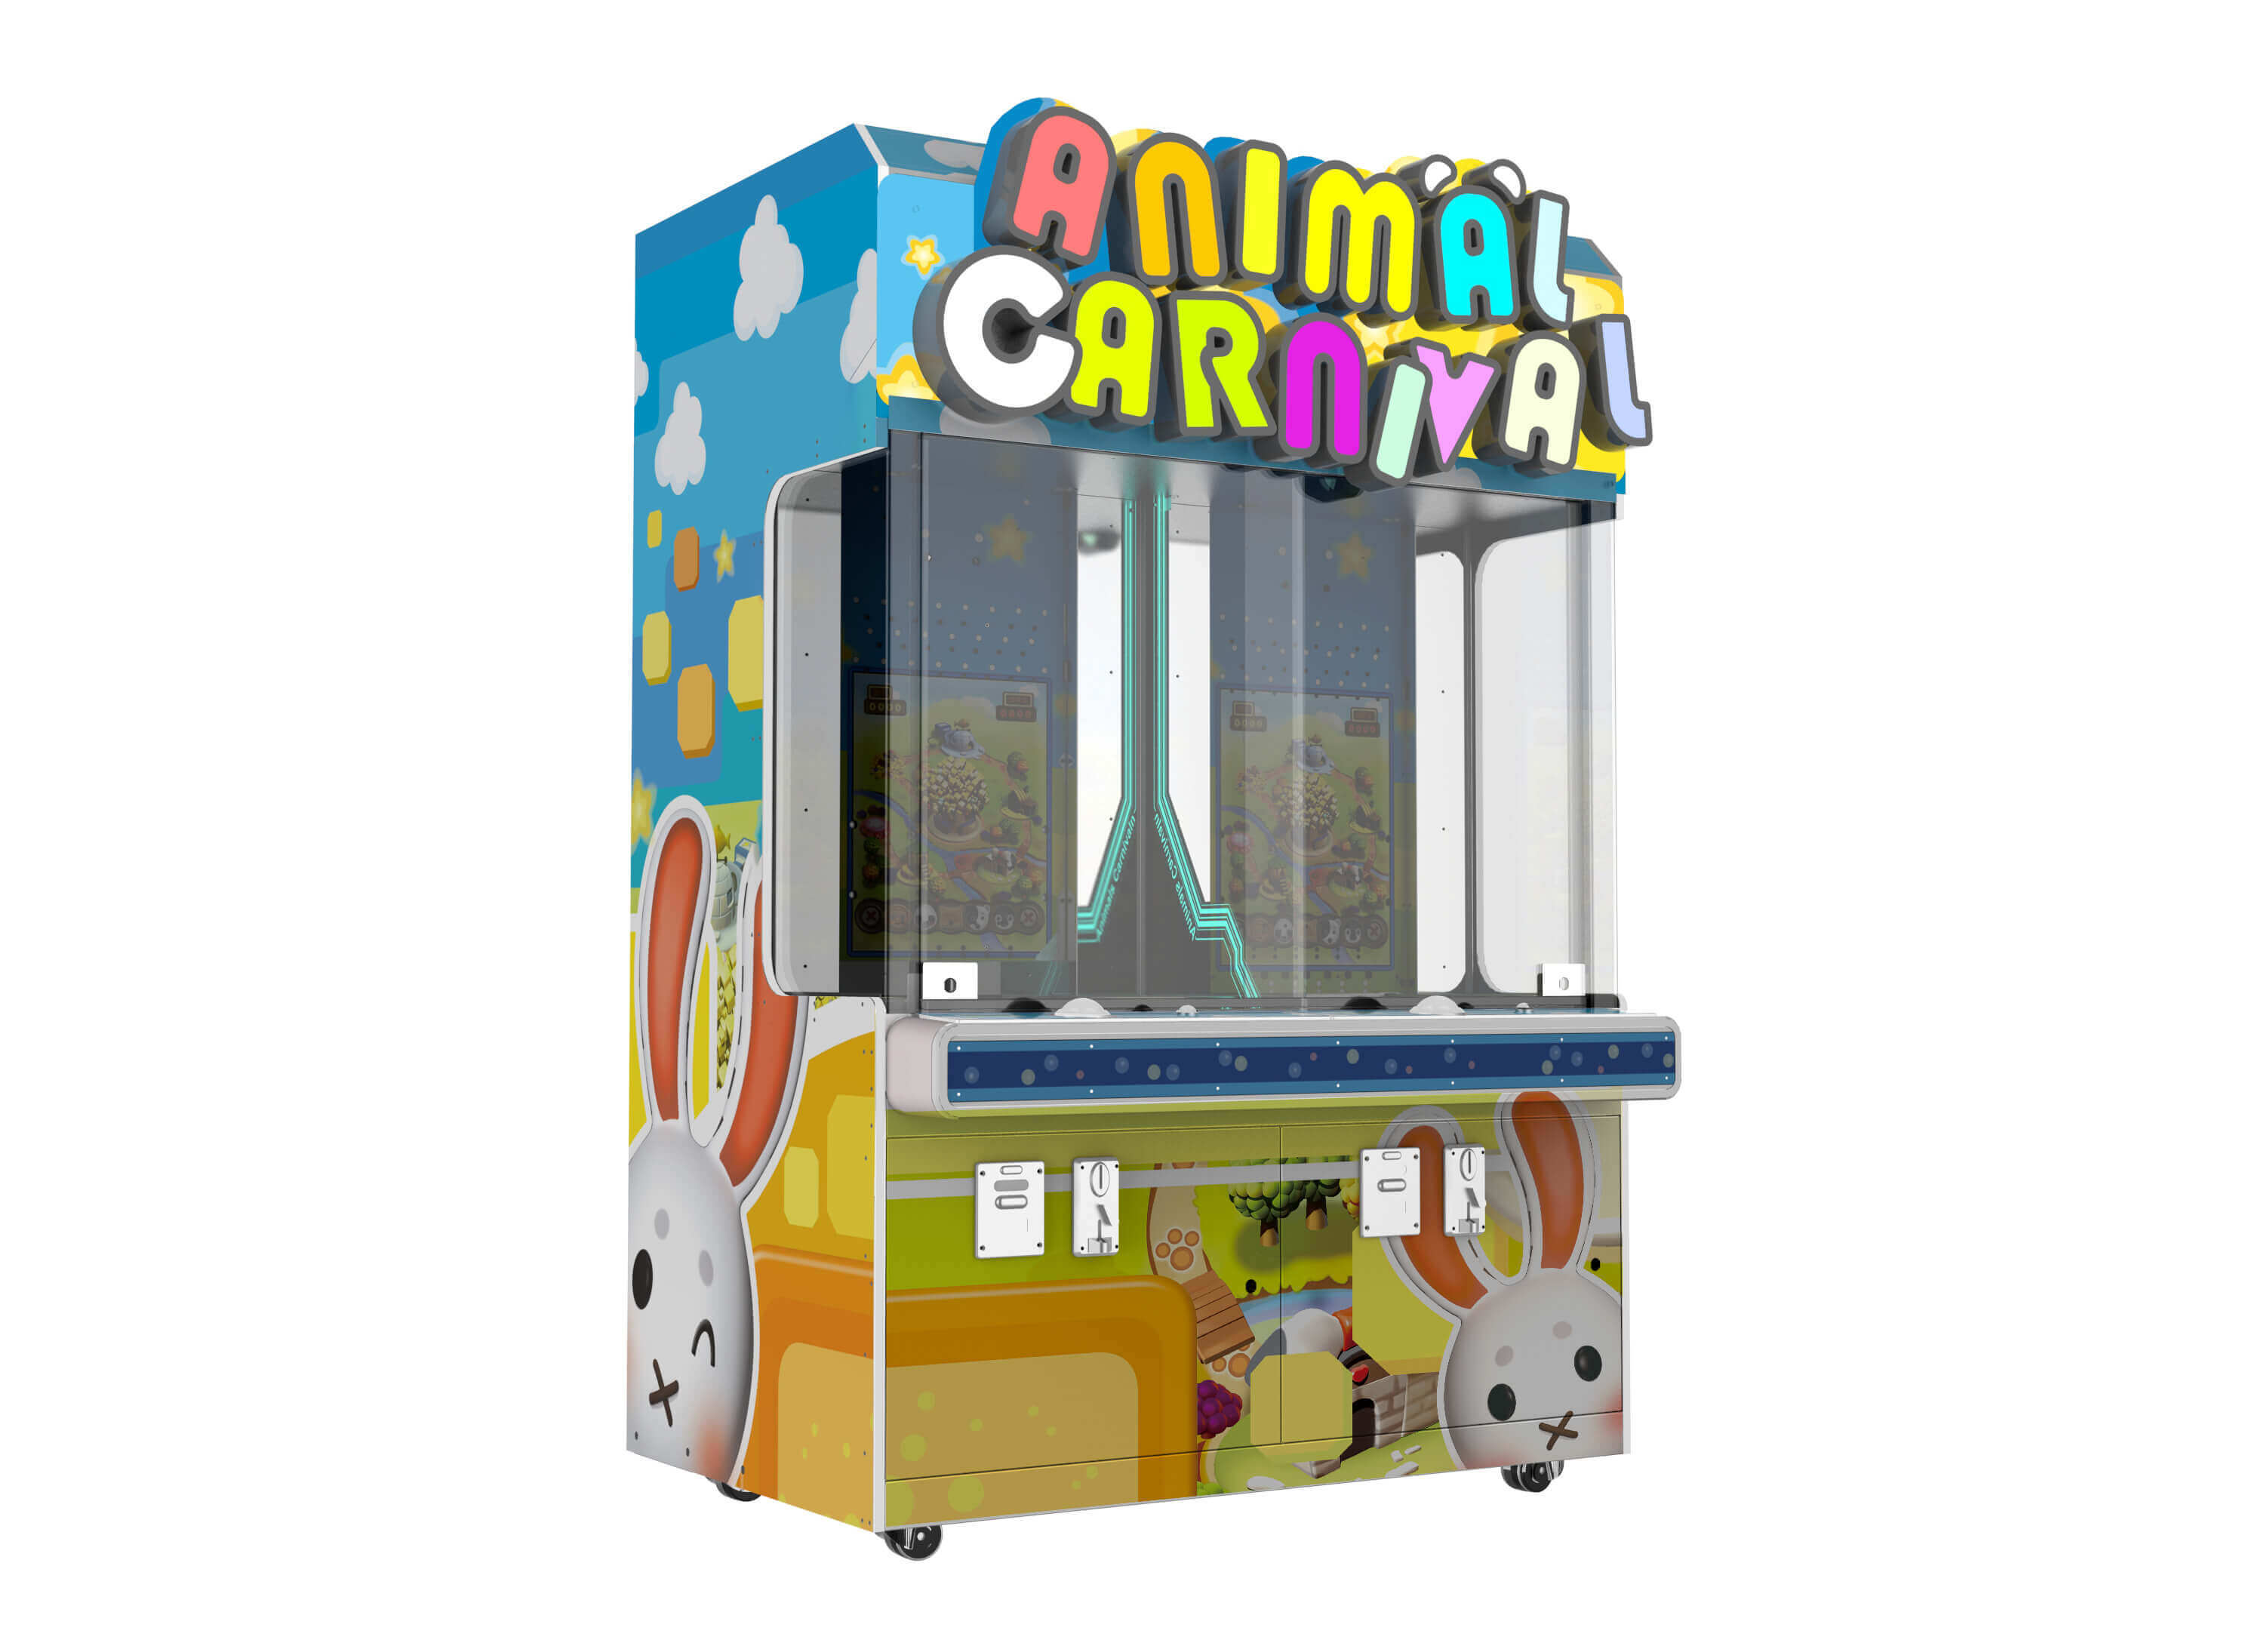 United Asia Entertainments Co., Ltd Provides A Series Of Quality Gaming Amusement Machines Offering Remarkable and Memorable Entertainment Experiences to All People